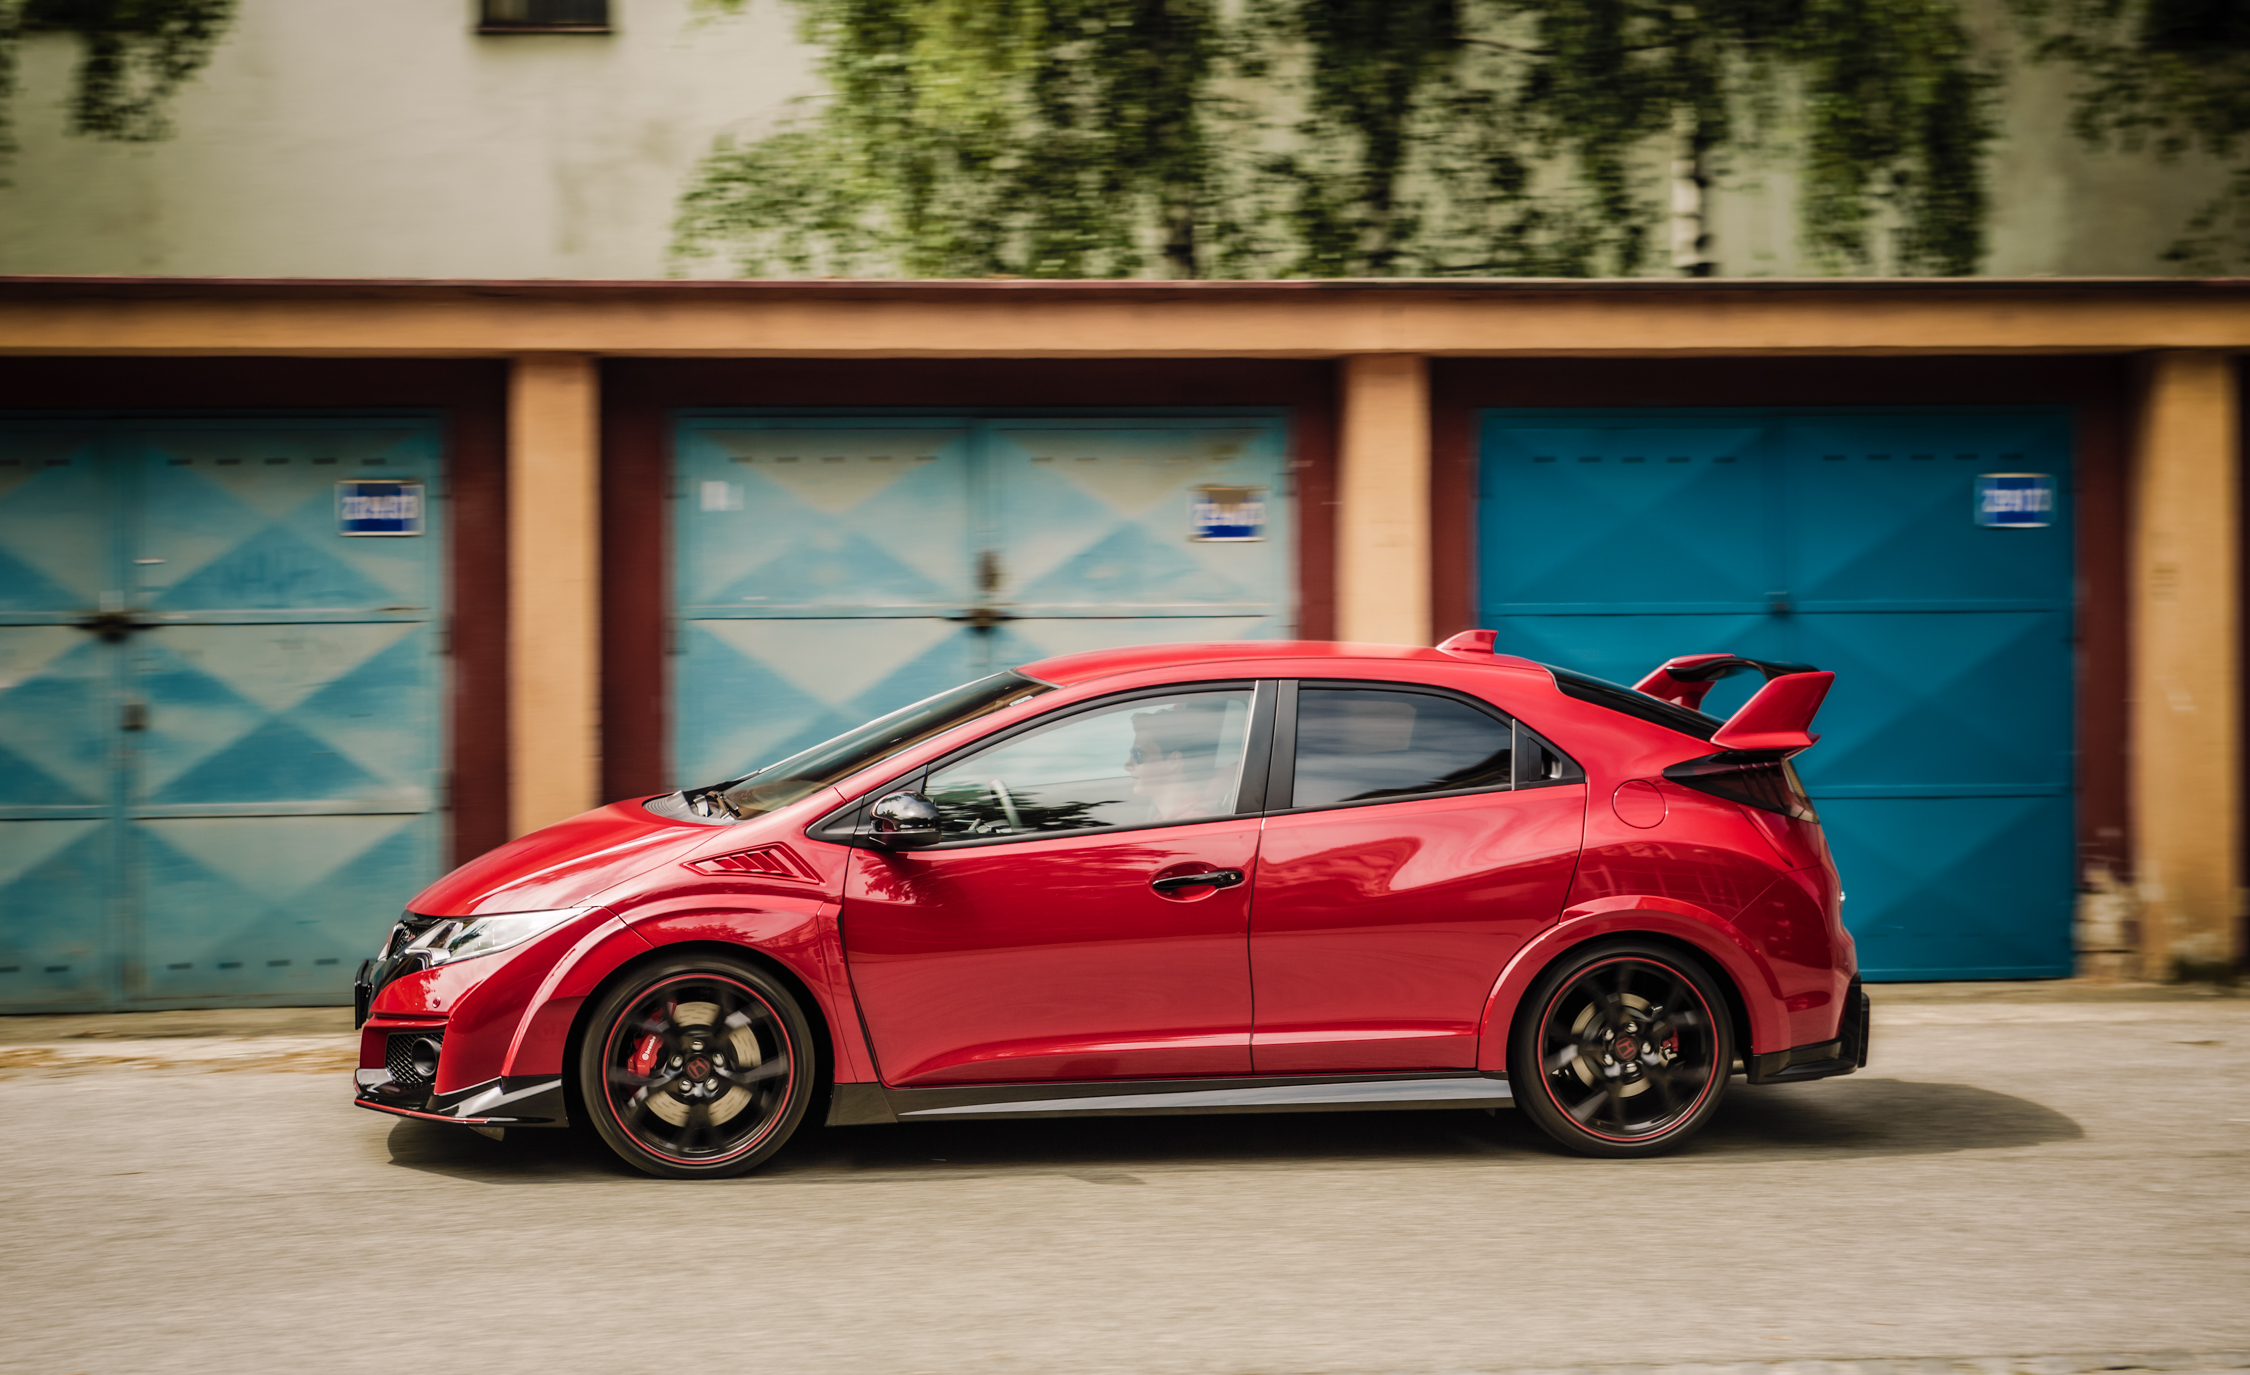 2015 Honda Civic Type R Exterior Full Side Left